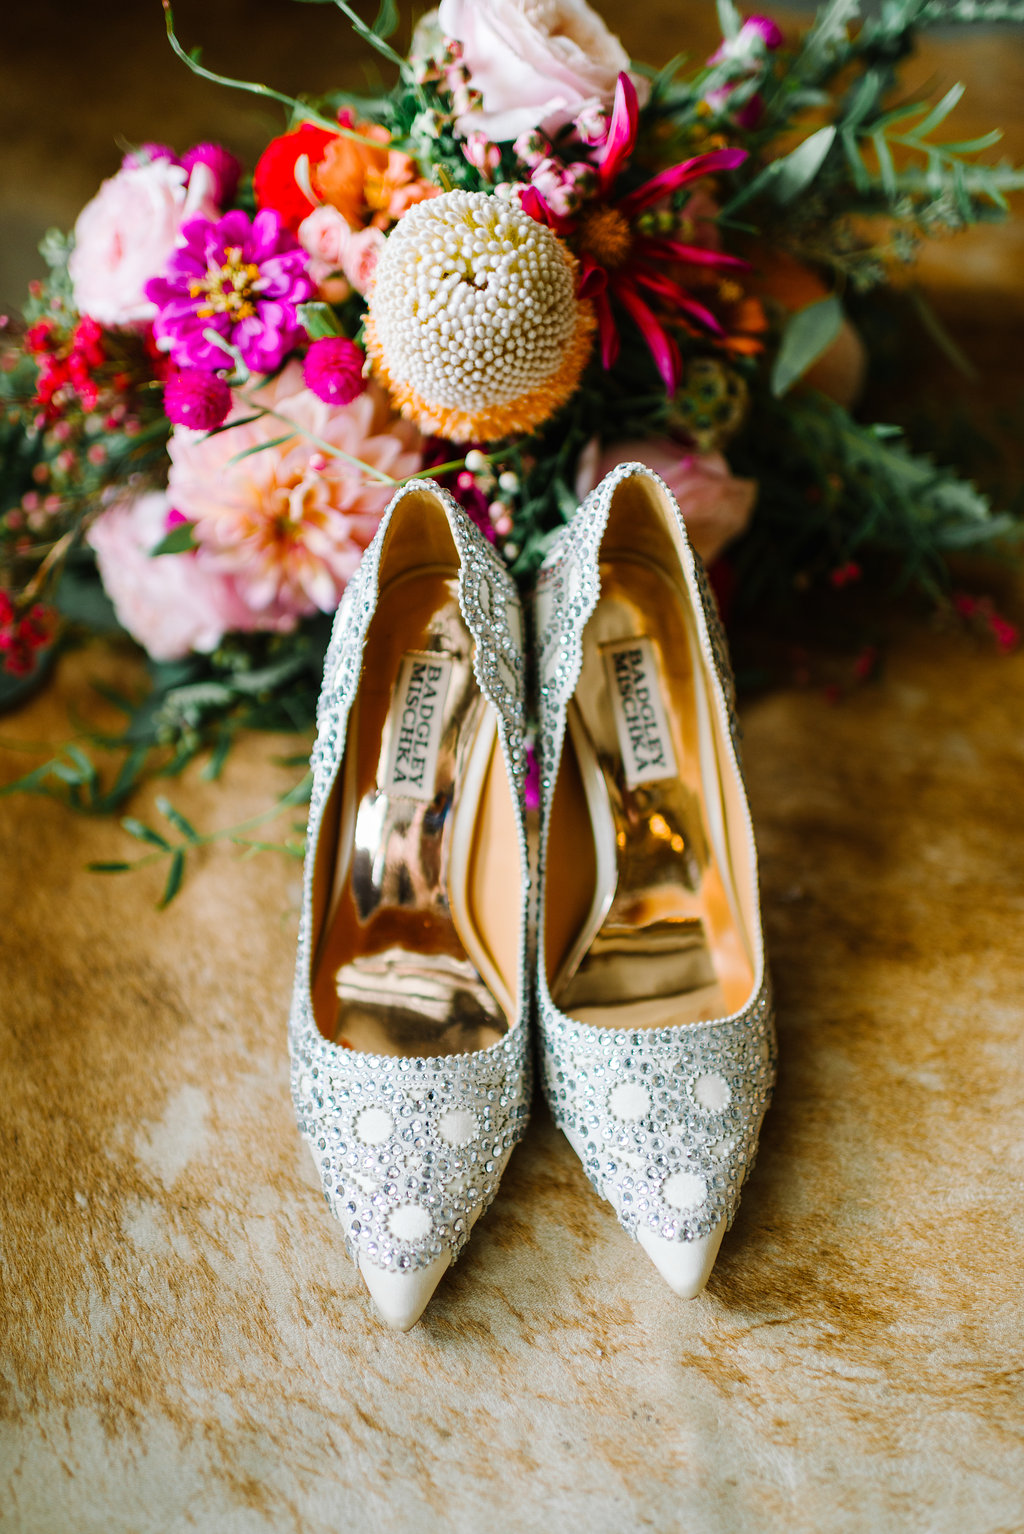 silver wedding shoes - photo by Cathrine Taylor Photography http://ruffledblog.com/colorful-alabama-wedding-with-desert-accents